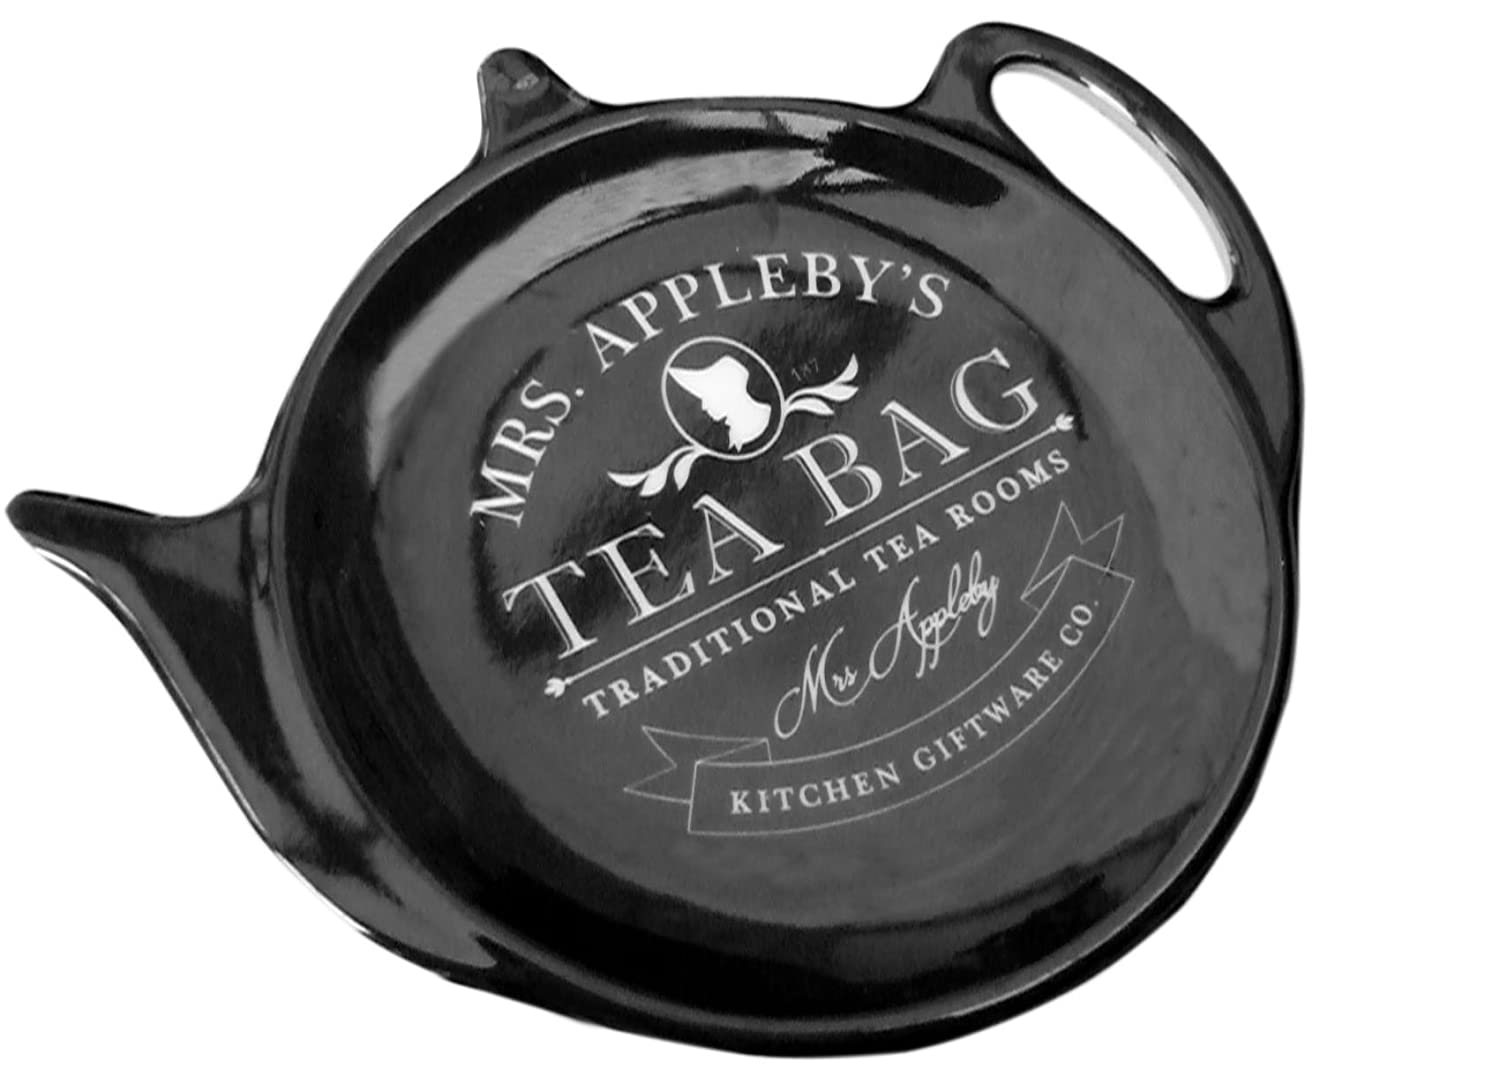 Black Mrs Appleby's Traditional Style Melamine Plastic Heart Teabag Holder Spoon Rest Strainer Mrs Applebys